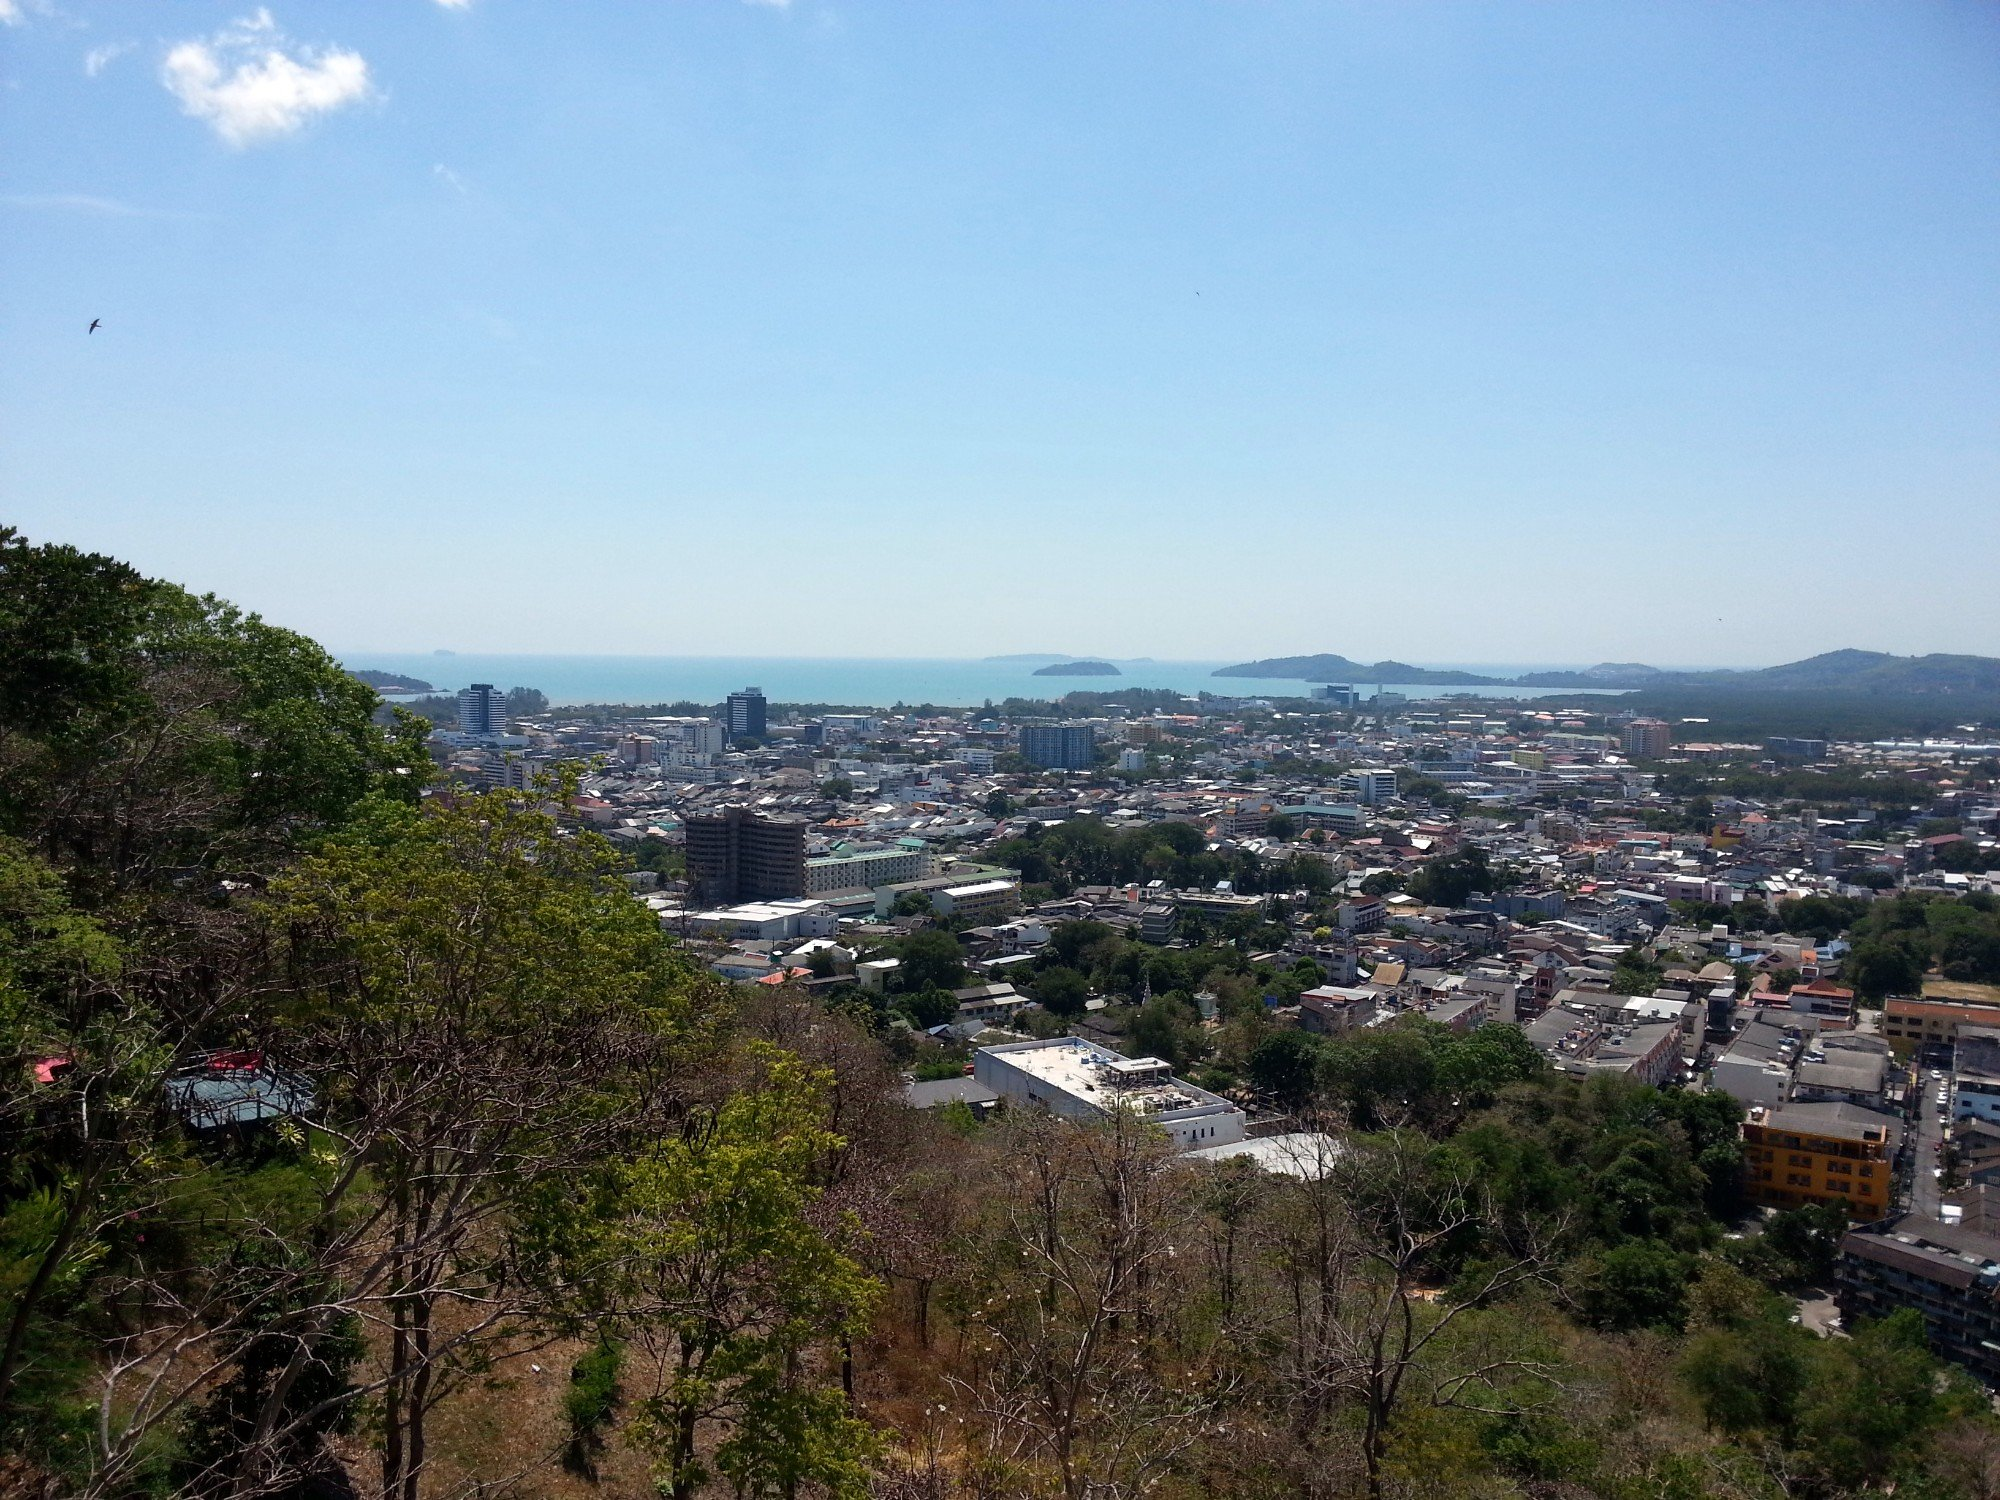 View from Rang Hill in Phuket